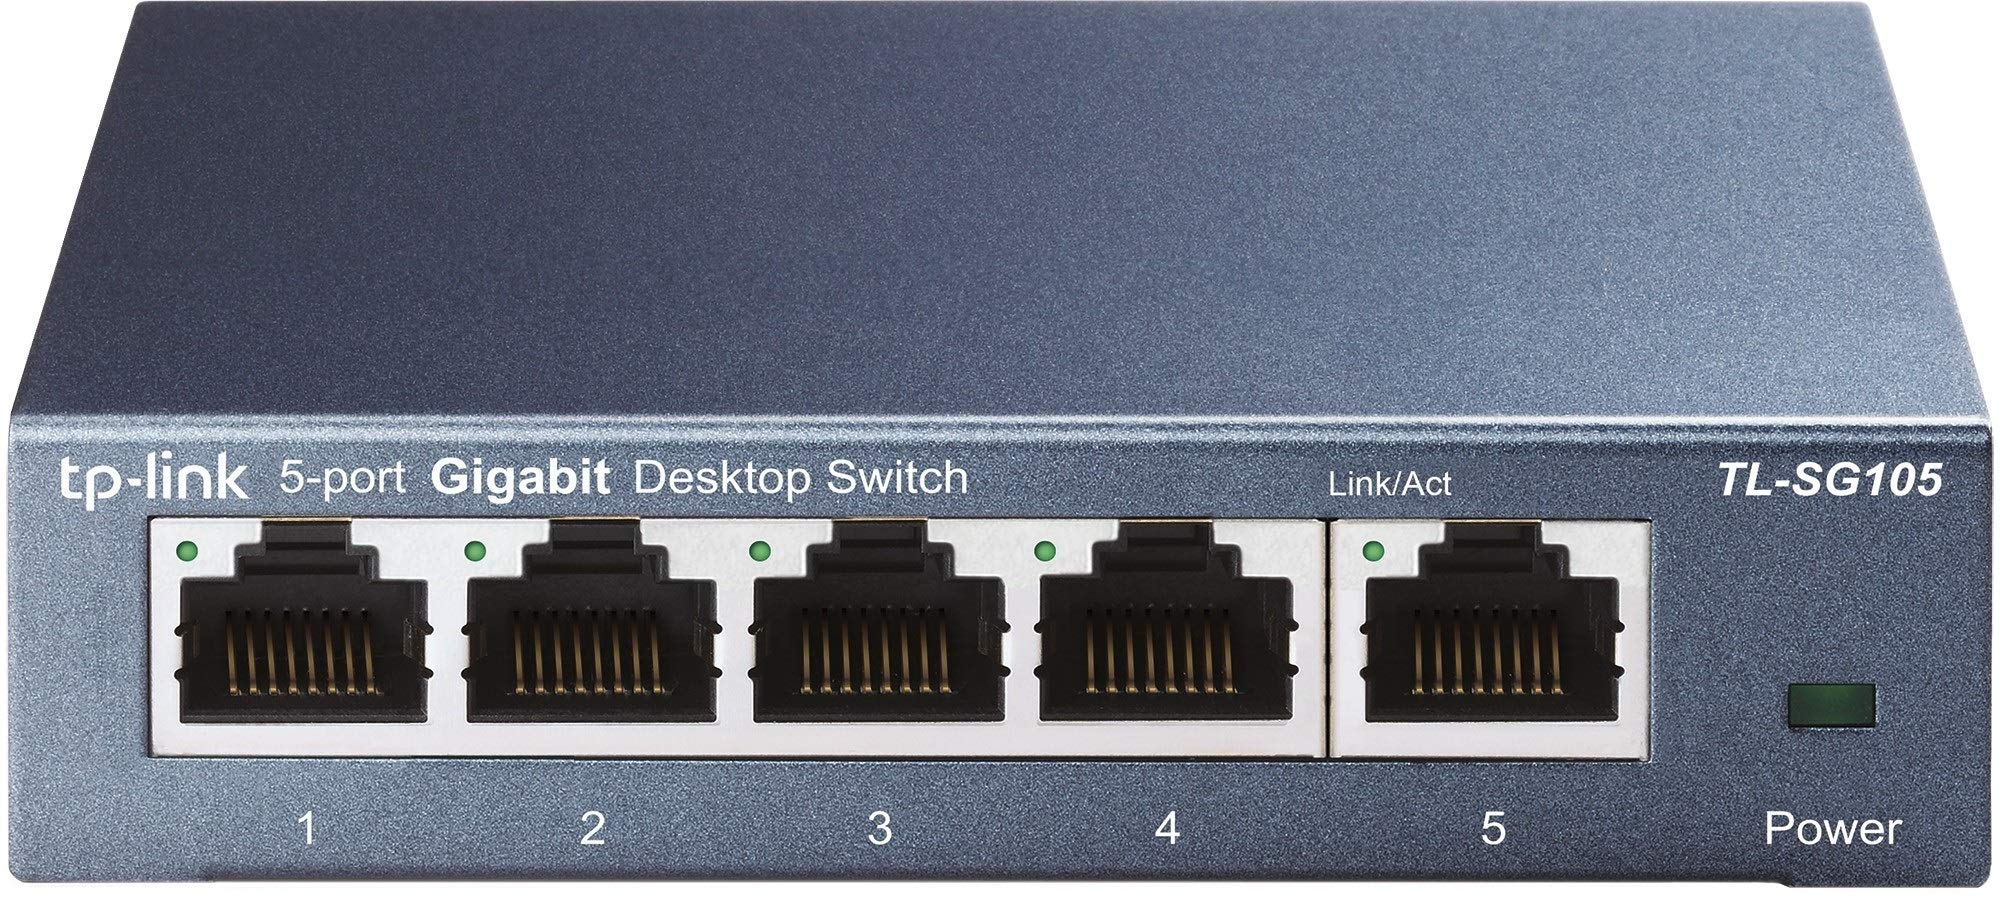 TP-Link Switch 5 Puertos 10/100/1000 (TL-SG105) Ladrón ethernet, Switch ethernet, Switch gigabit, Indicador del estado, acero inoxidable con Super disipación de calor, IGMP snooping, QoS